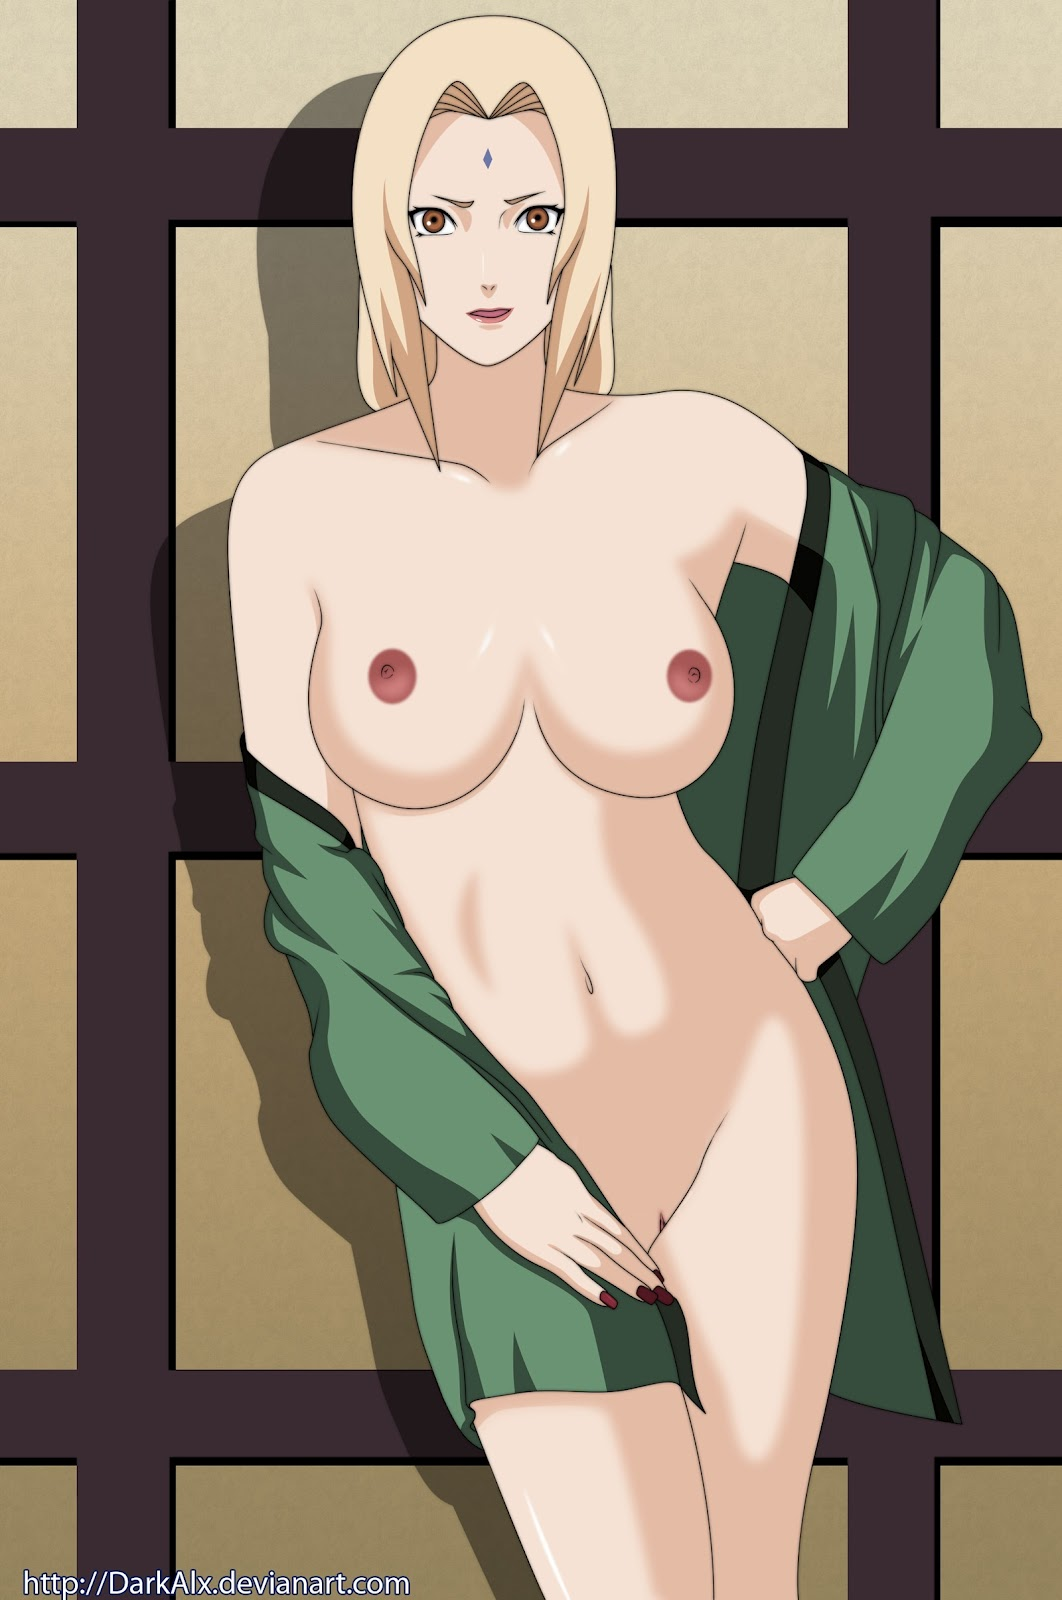 Nude pics of naruto girls having sex suggest